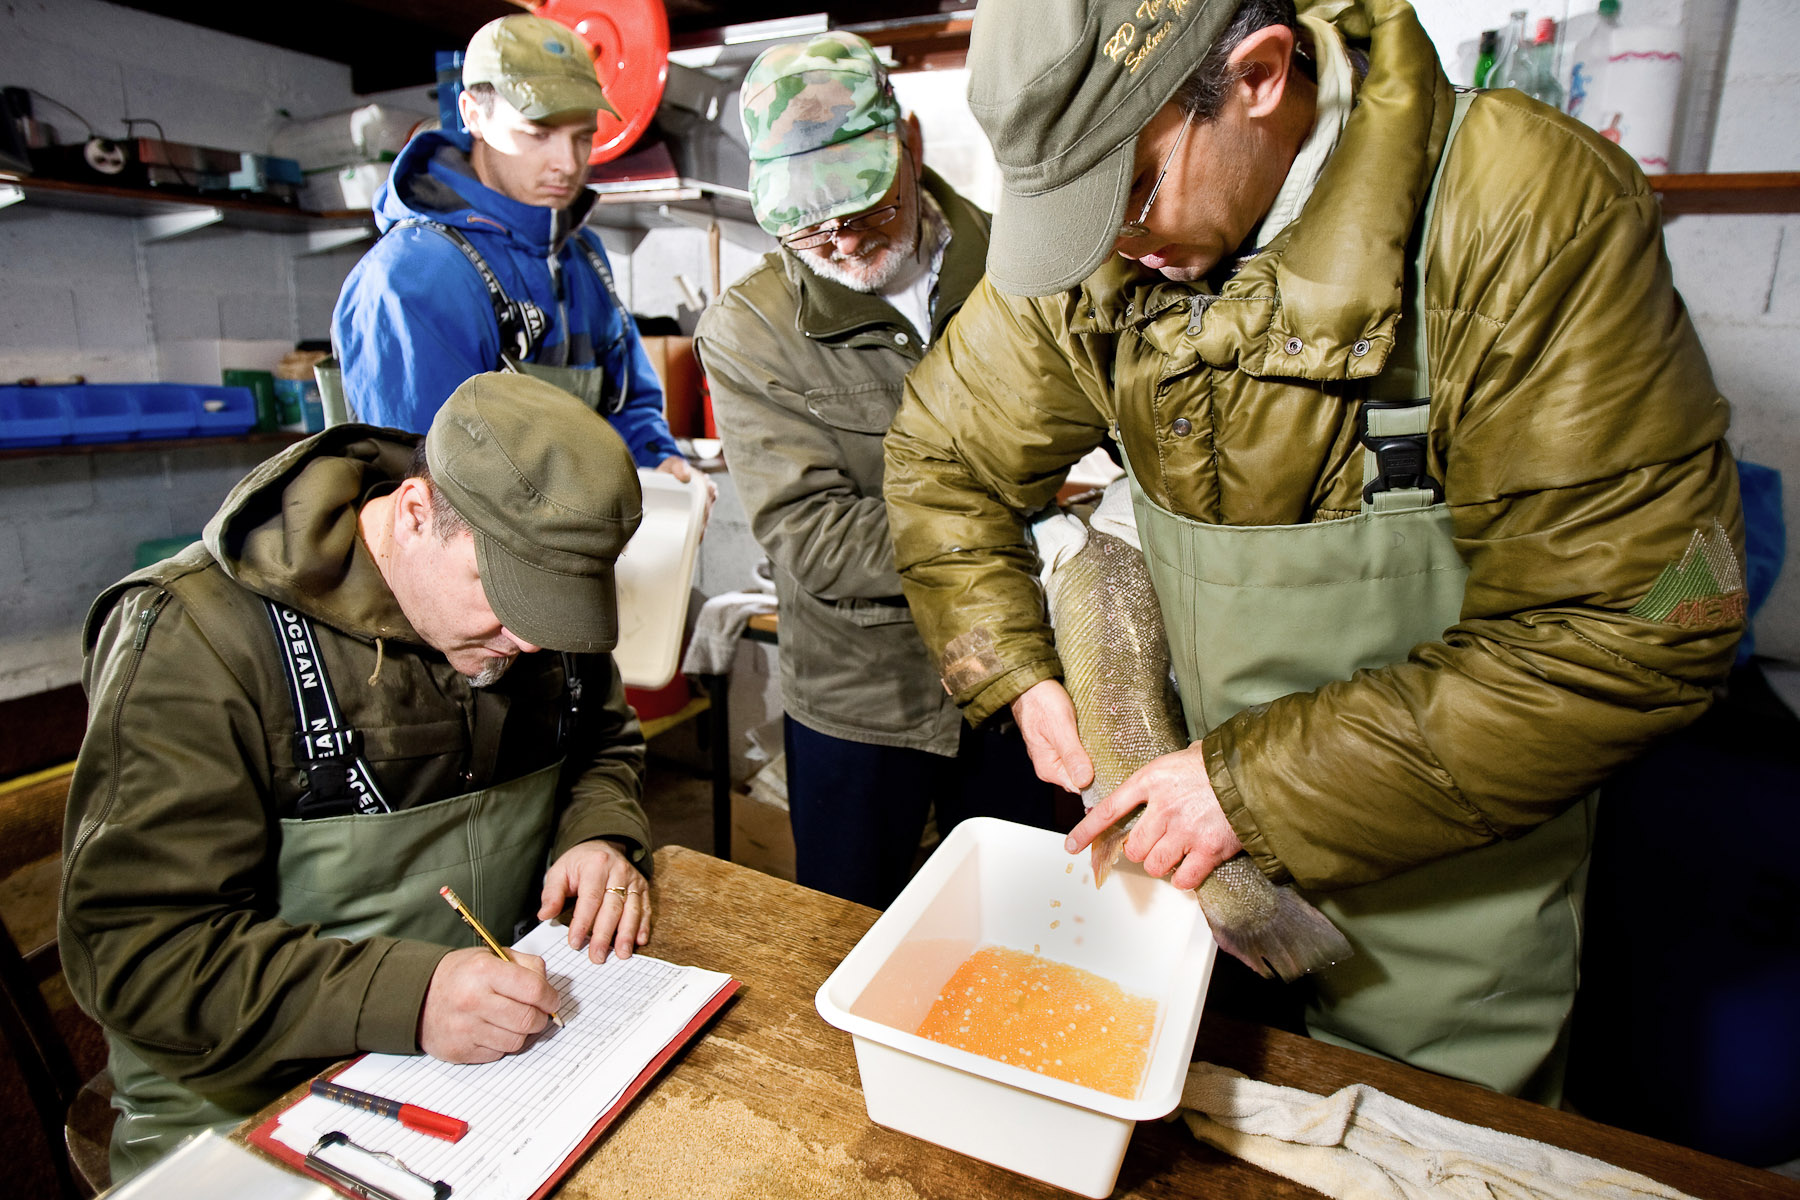 From left, Robert Sveticic, John Zablocki, Zoran Kocic and Dusan Jesensek extract fish eggs from an adult female Marble trout in the Tolminka fish farm. An adult female Marble trout can produce up to 4000 fish eggs, but the avarage is just over a thousand.